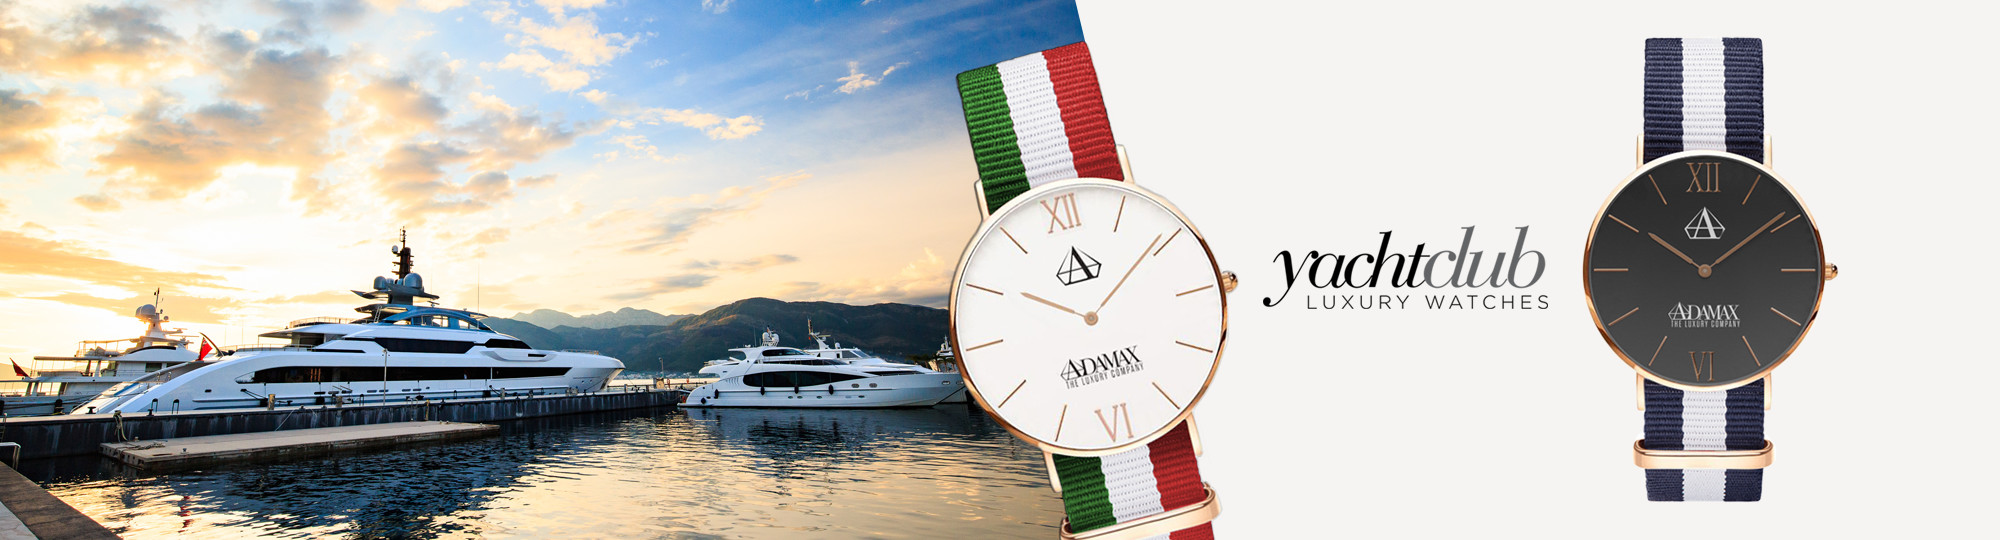 yachtclub luxury watches